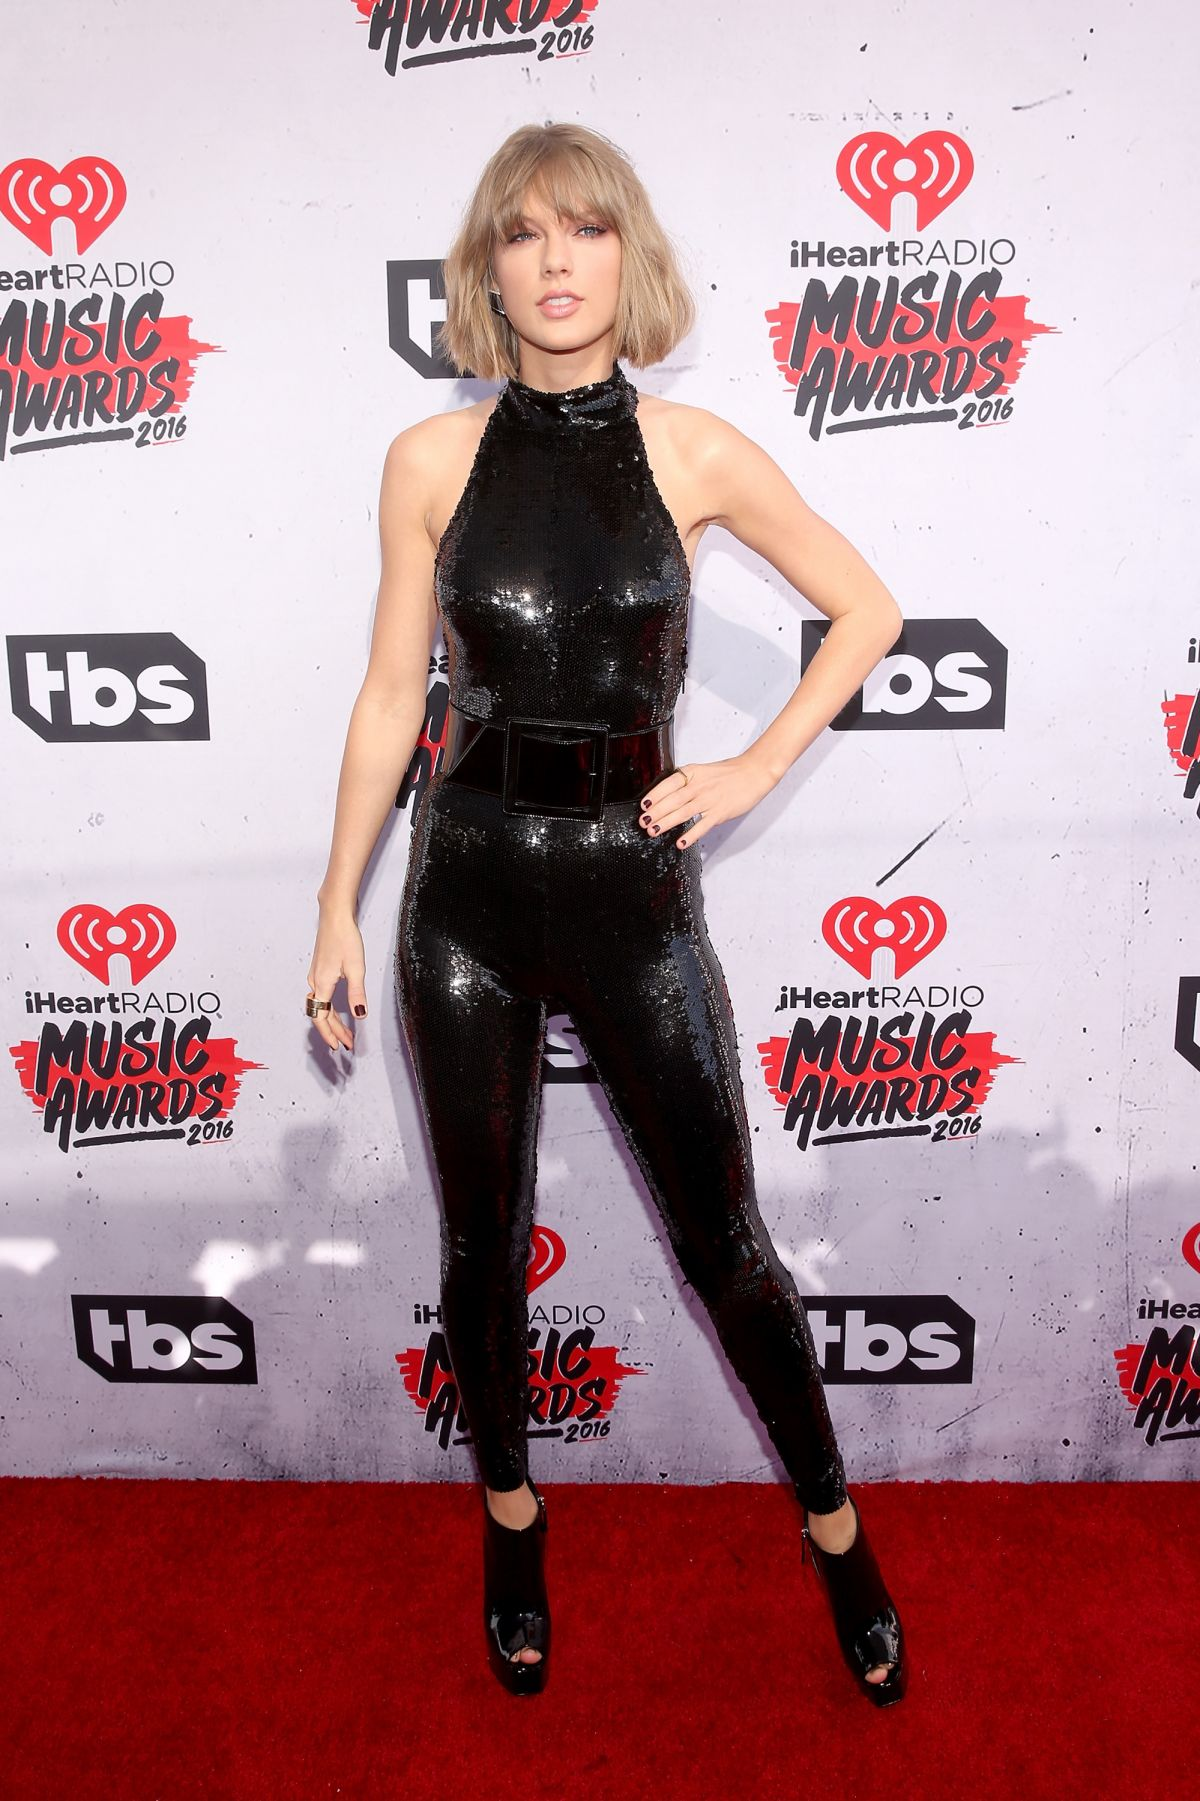 taylor-swift-at-iheartradio-music-awards